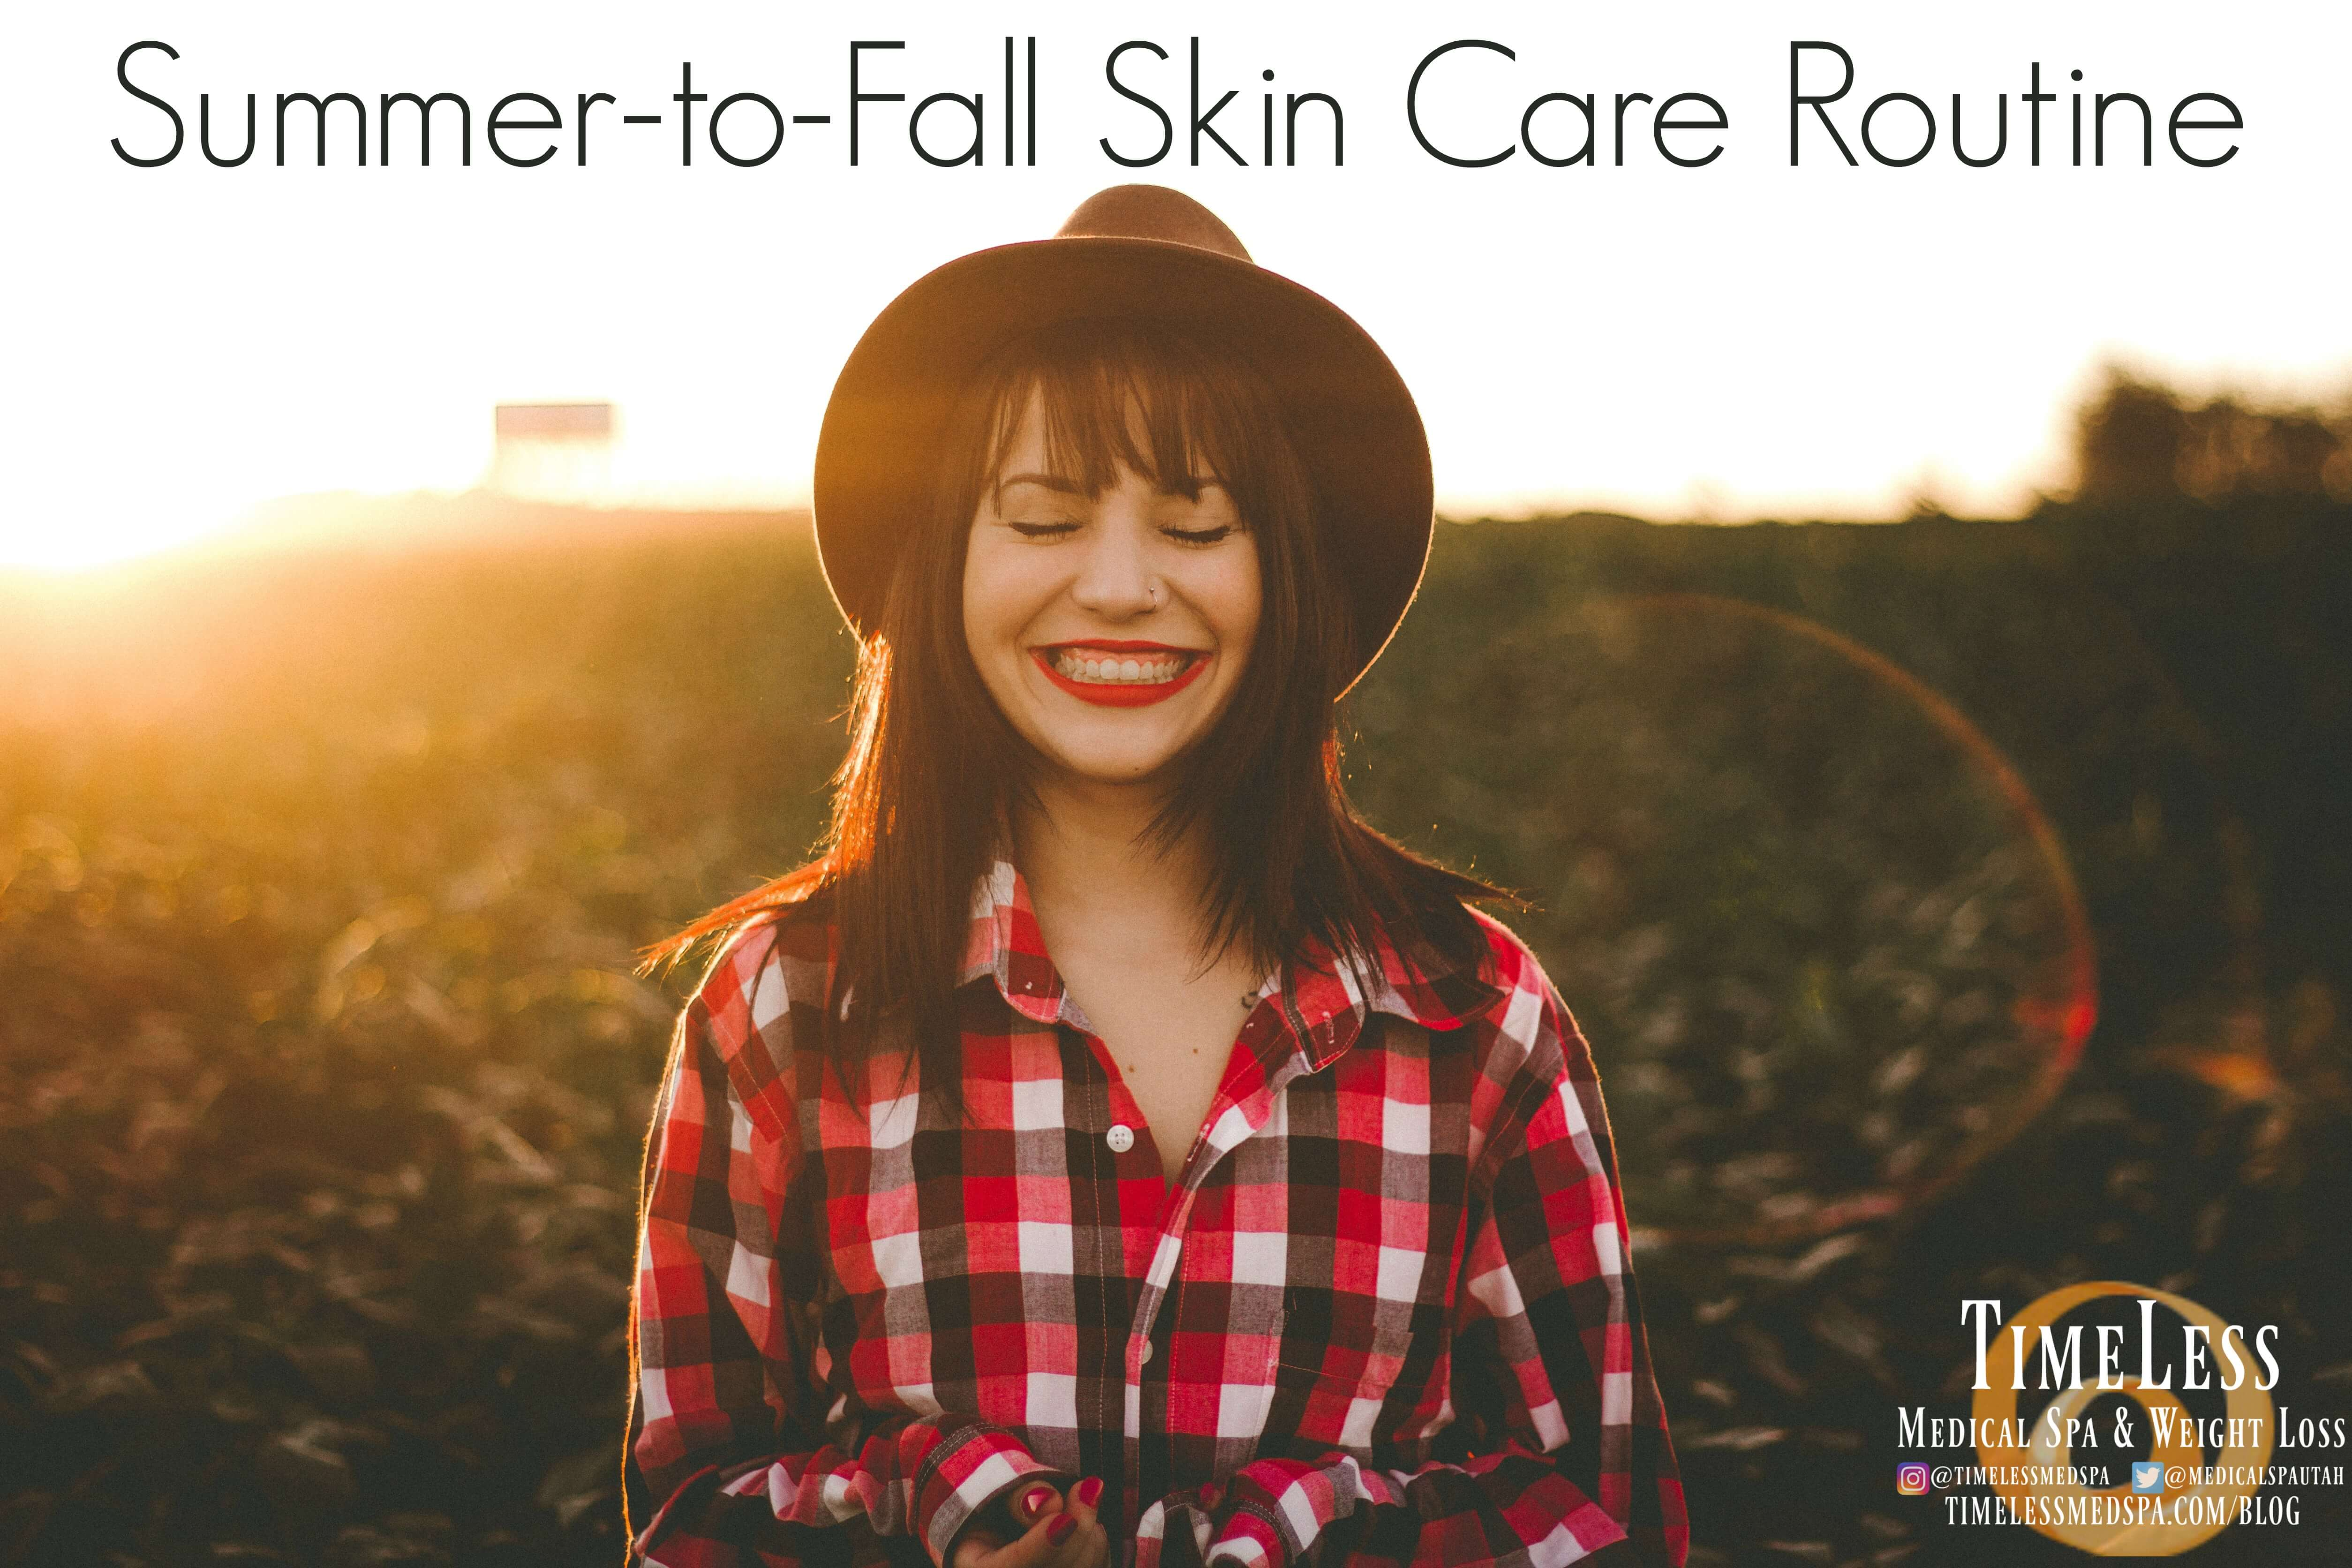 Summer-to-Fall Skin Care Routine